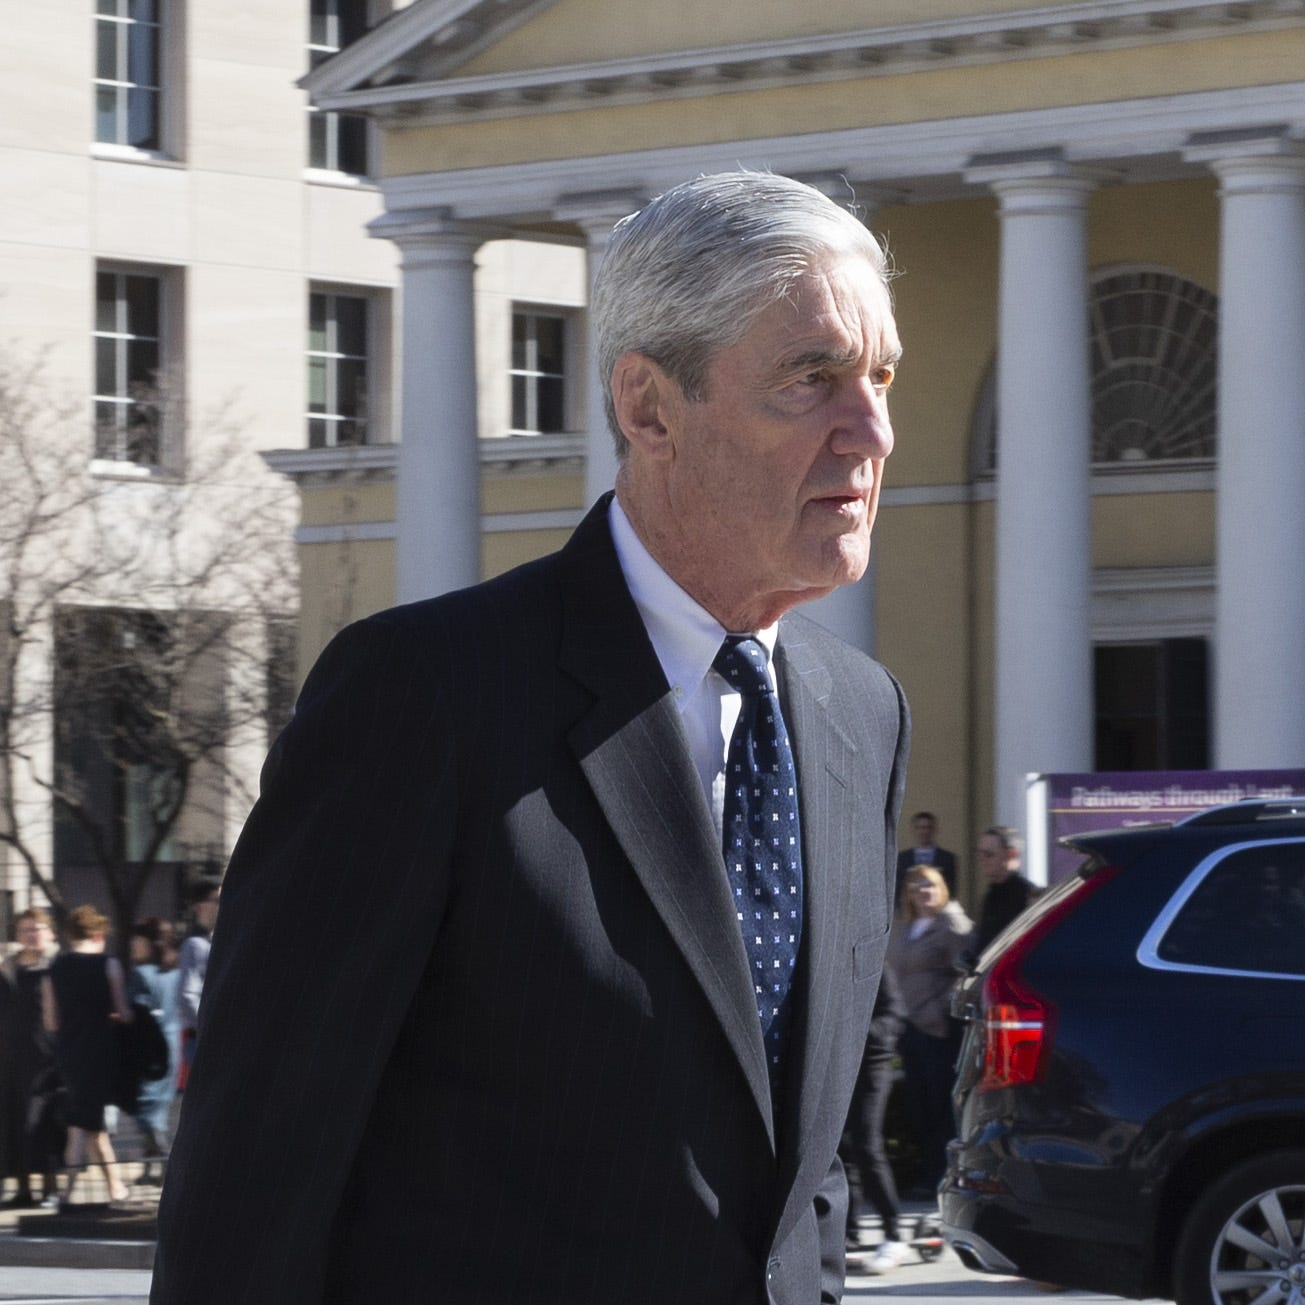 Special counselRobert Mueller on March 24, 2019, at a church across from the White House.